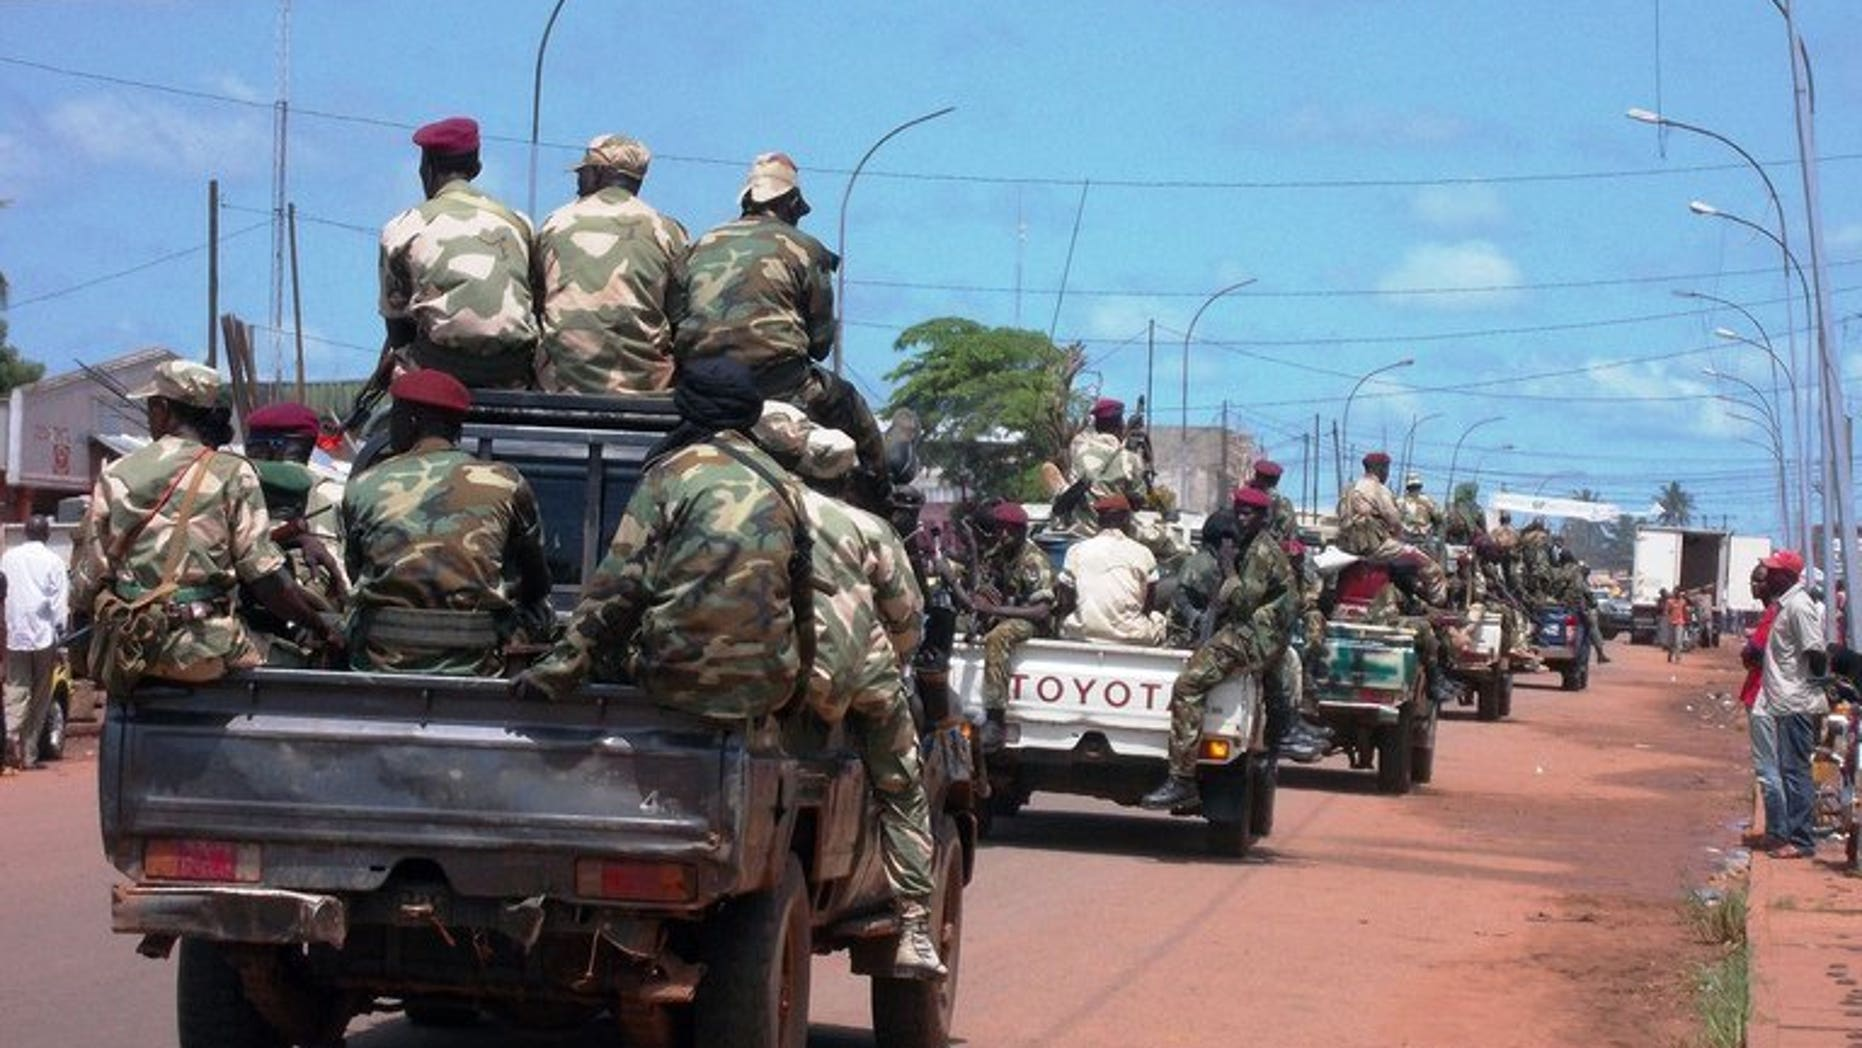 Troops in charge of disarmament ride through the Central African Republic capital Bangui on September 5, 2013. Almost 100 people have died this week in two days of fighting between the new Central African Republic president's forces and those loyal to ousted leader Francois Bozize, the presidency said Wednesday, updating an earlier toll.